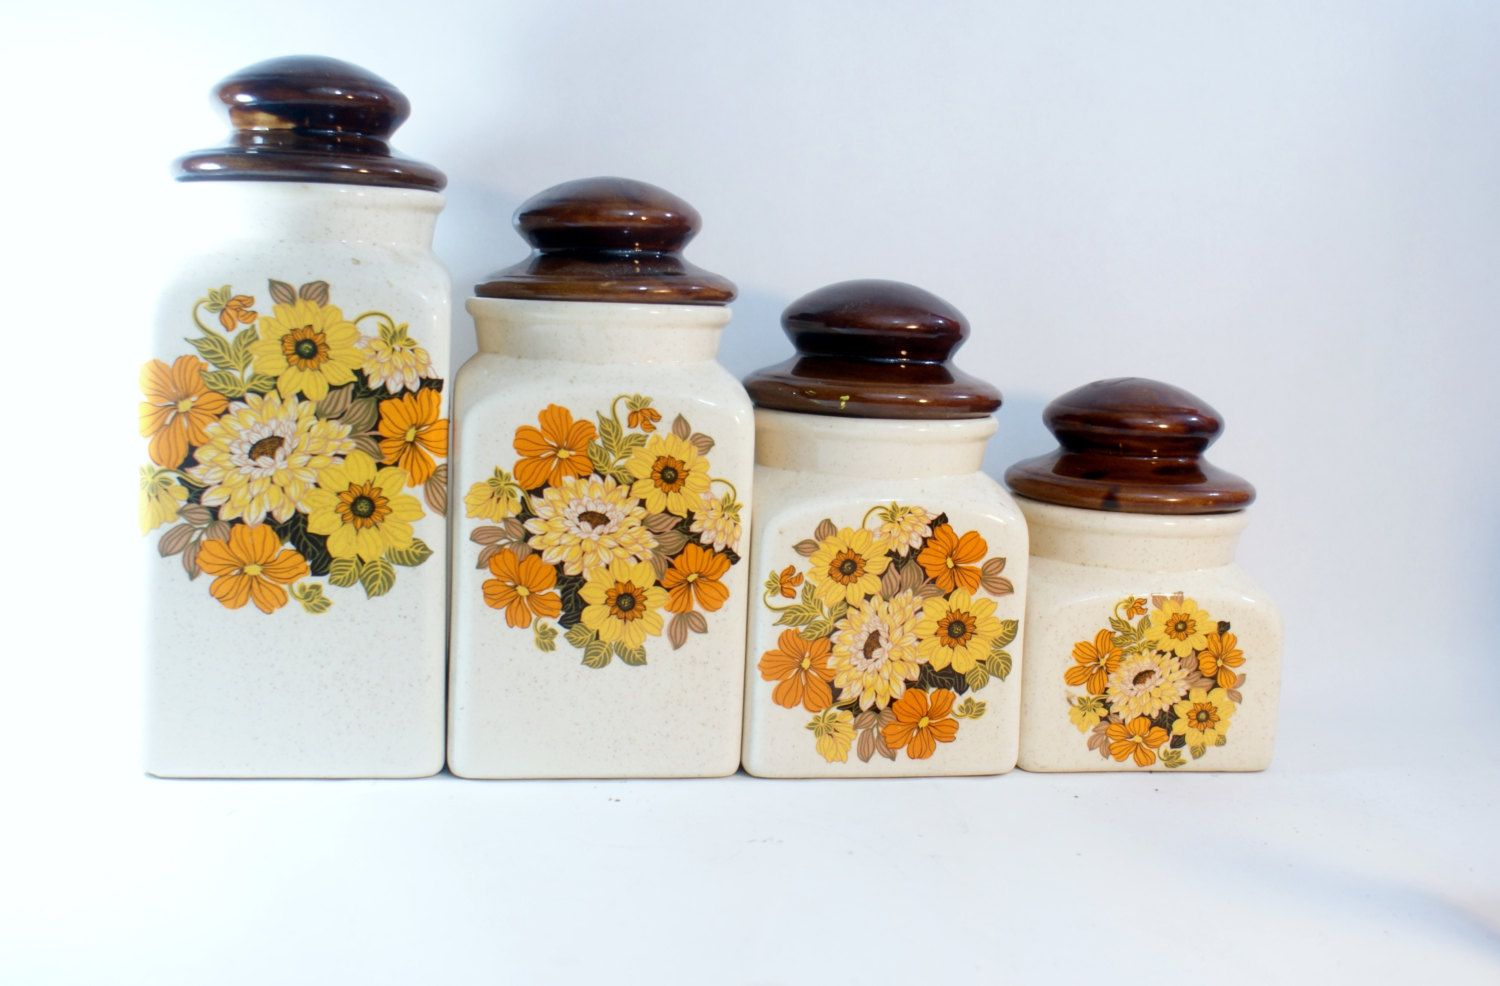 Set Ceramic Canister Kitchen Canisters 4 White Storage Lids Coffee Sugar Painted Hand Vintage Flour Jars by DoorCountyVintage on Etsy